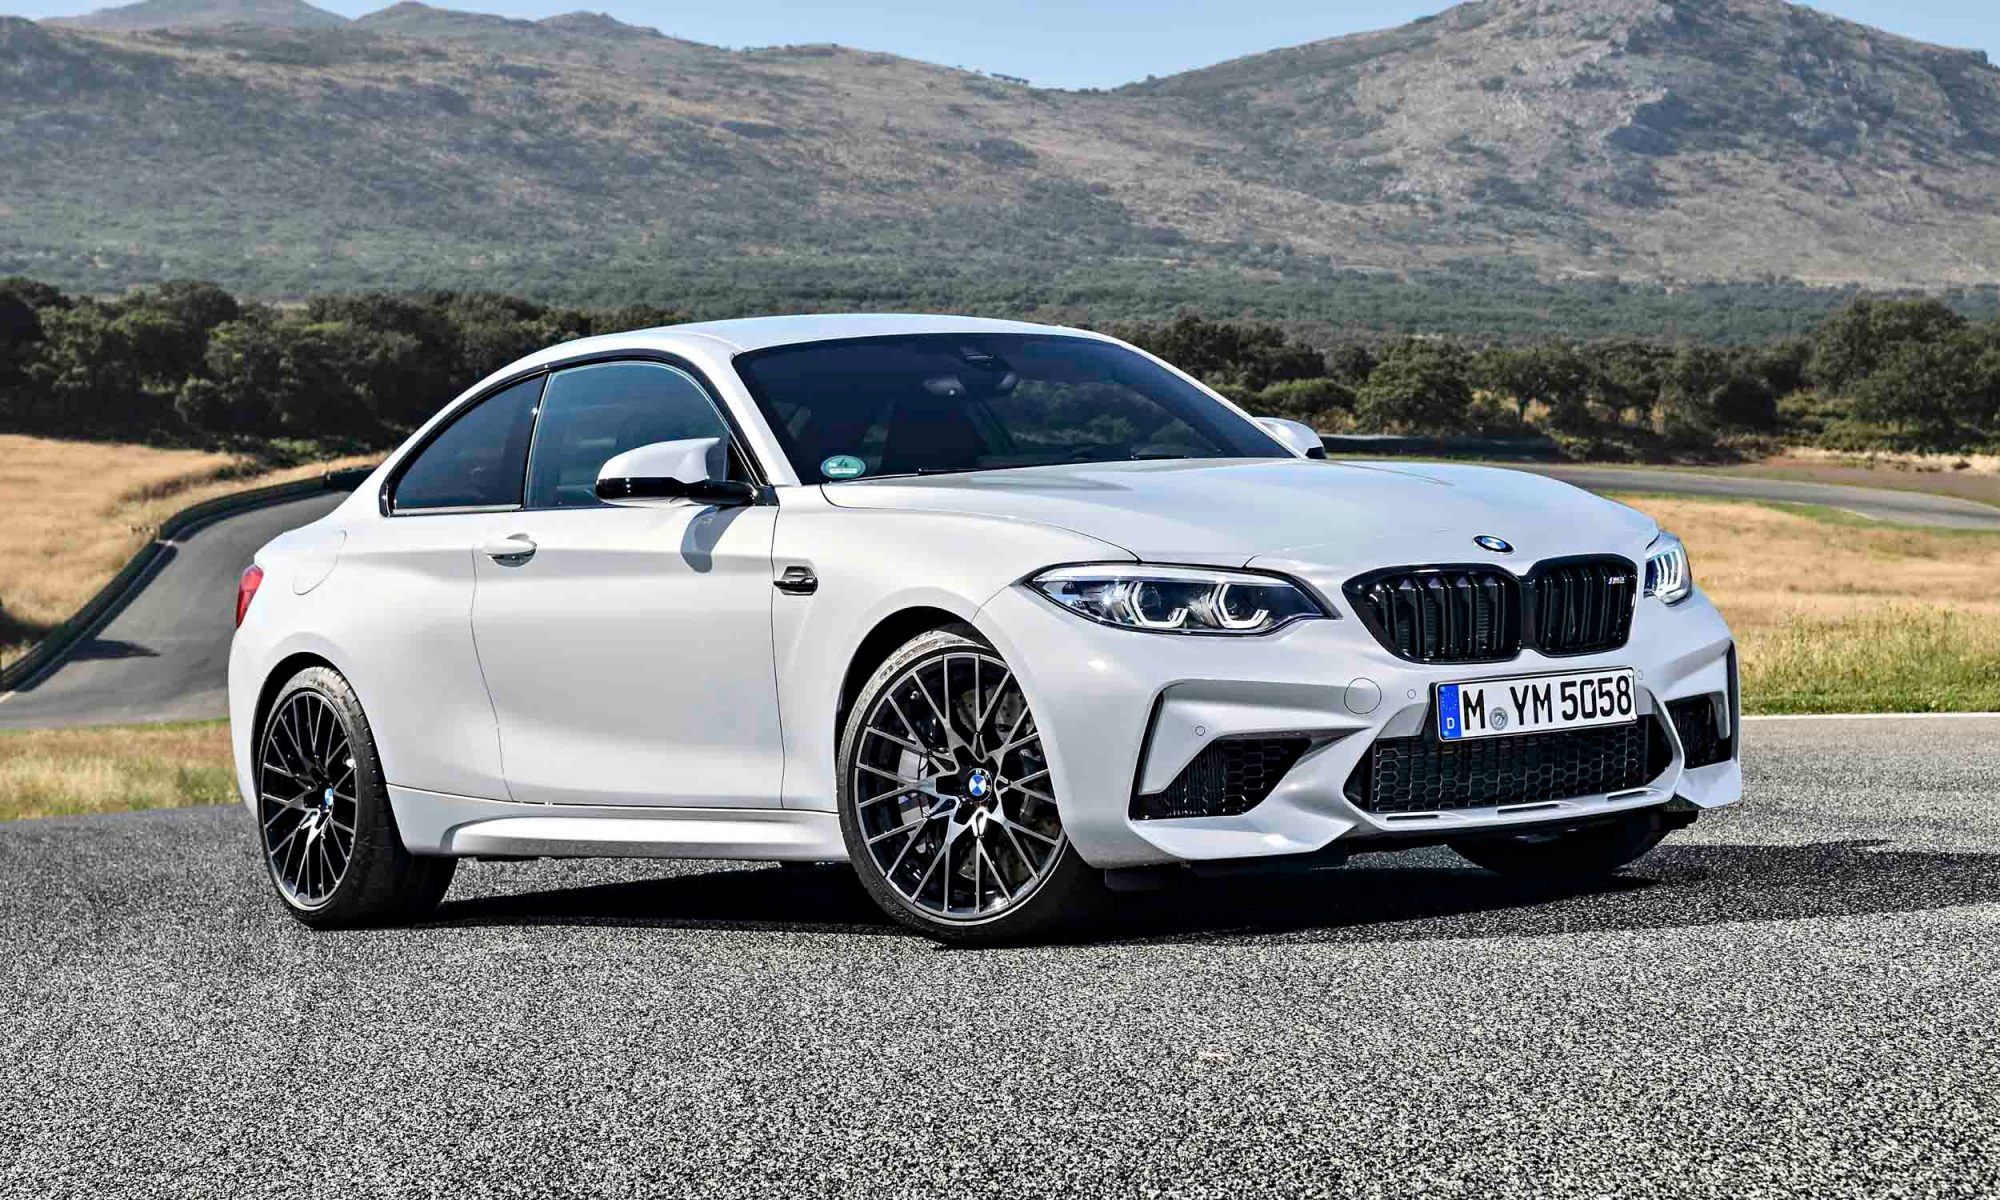 hight resolution of manufacturer bmw of north america number of vehicles affected 5 079 report date may 9 2019 issue bmw of north america llc bmw is recalling certain